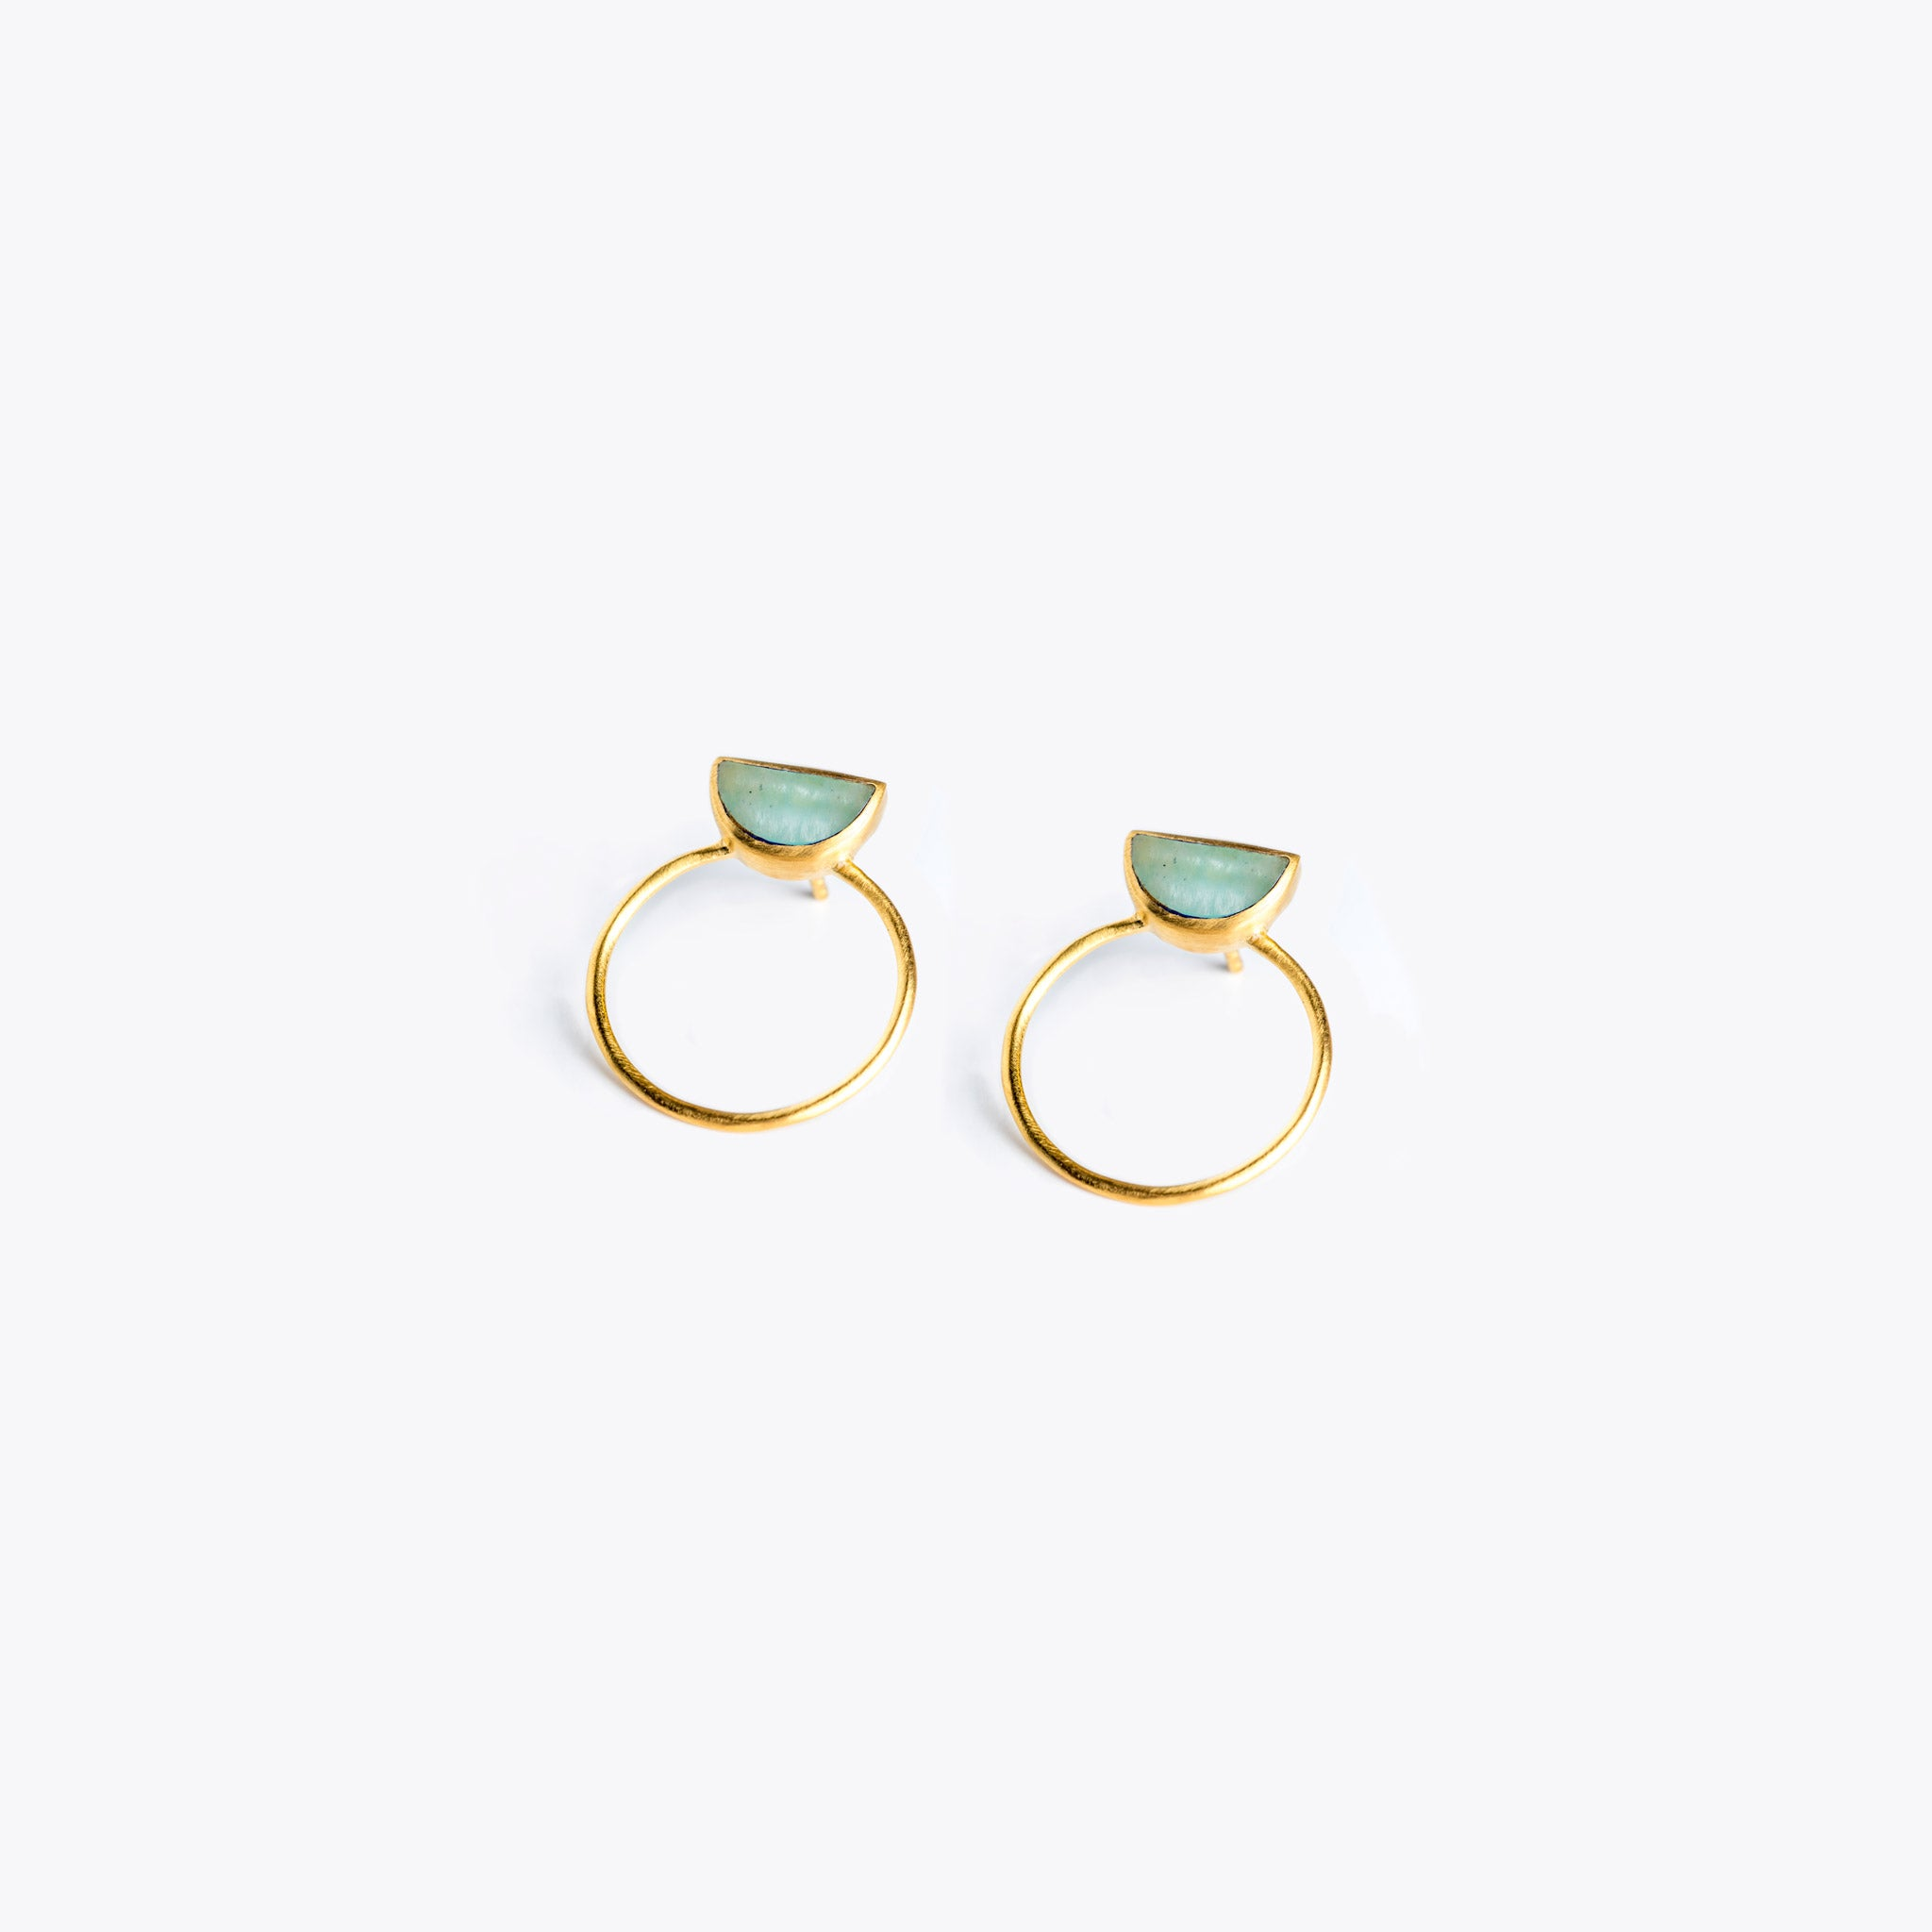 Wanderlust Life Ethically Handmade jewellery made in the UK. Minimalist gold and fine cord jewellery. sunburst halo earring, amazonite